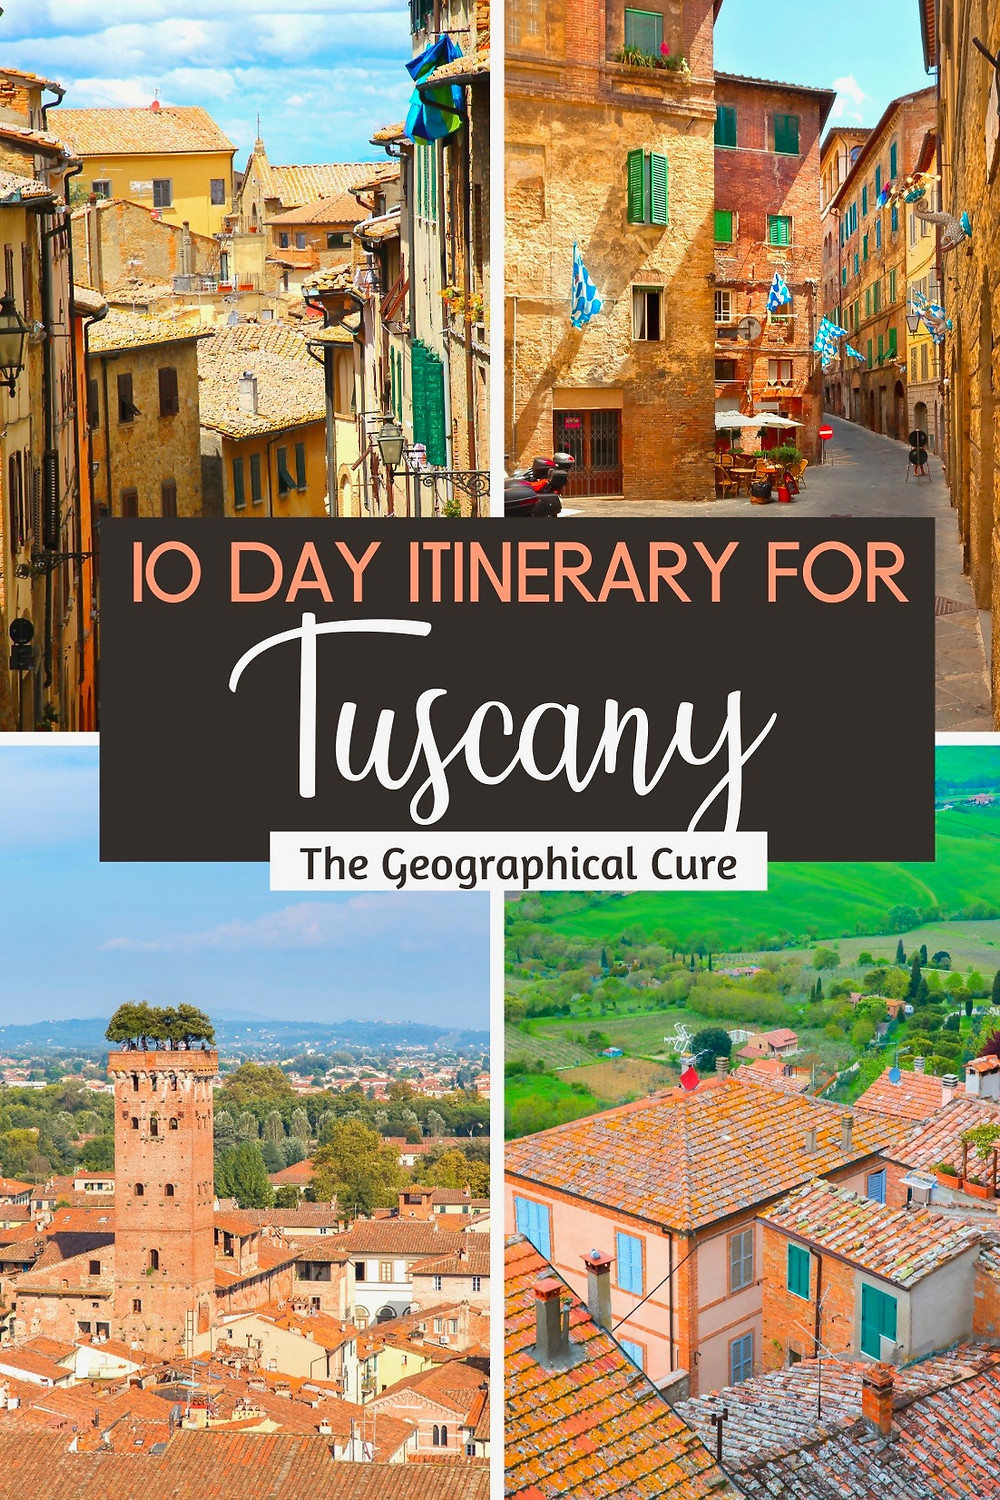 10 Day Itinerary for Romantic Tuscany